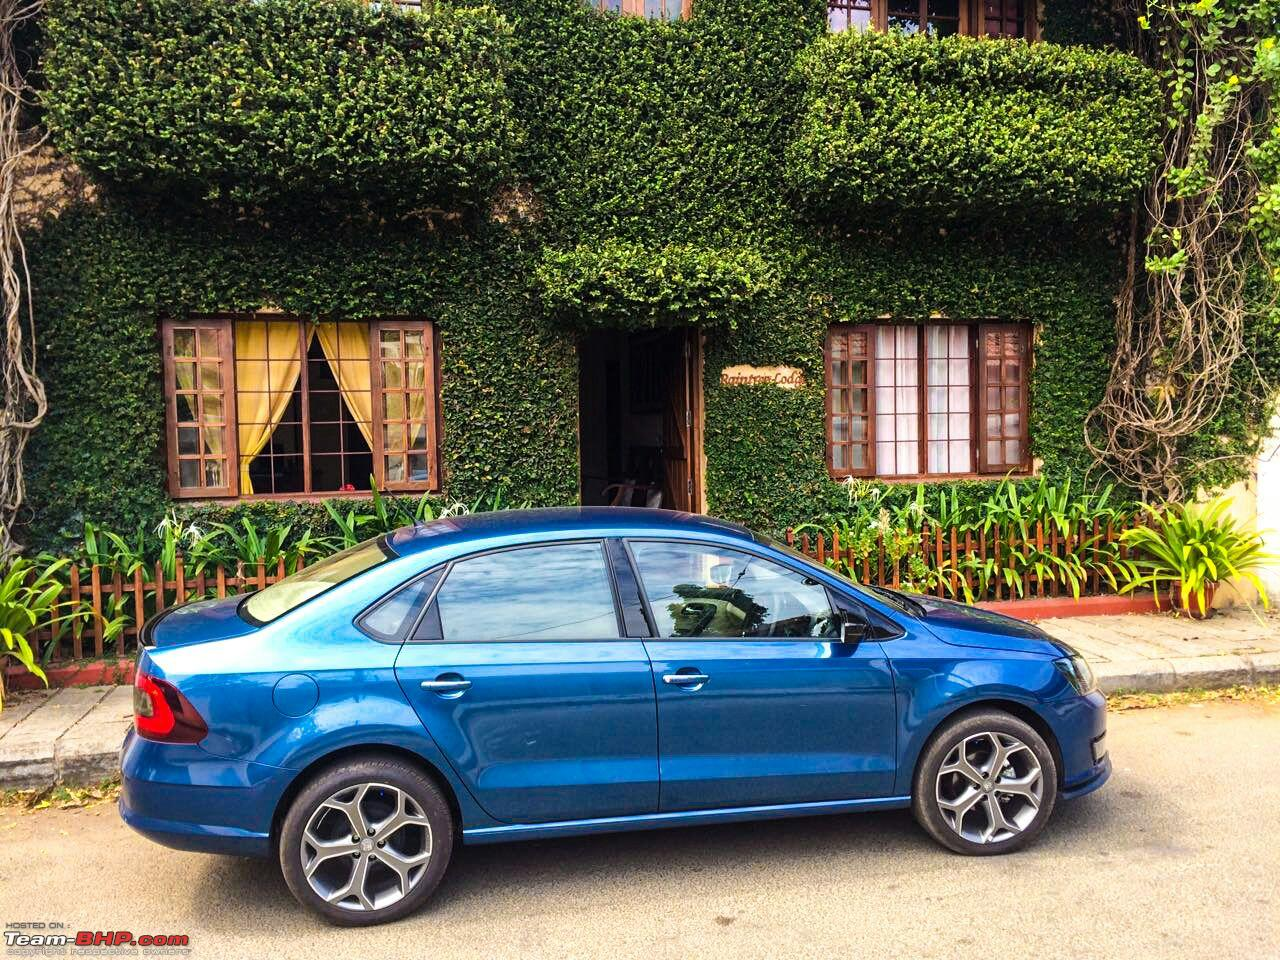 Pics Tastefully Modified Cars In India Page 246 Team Bhp